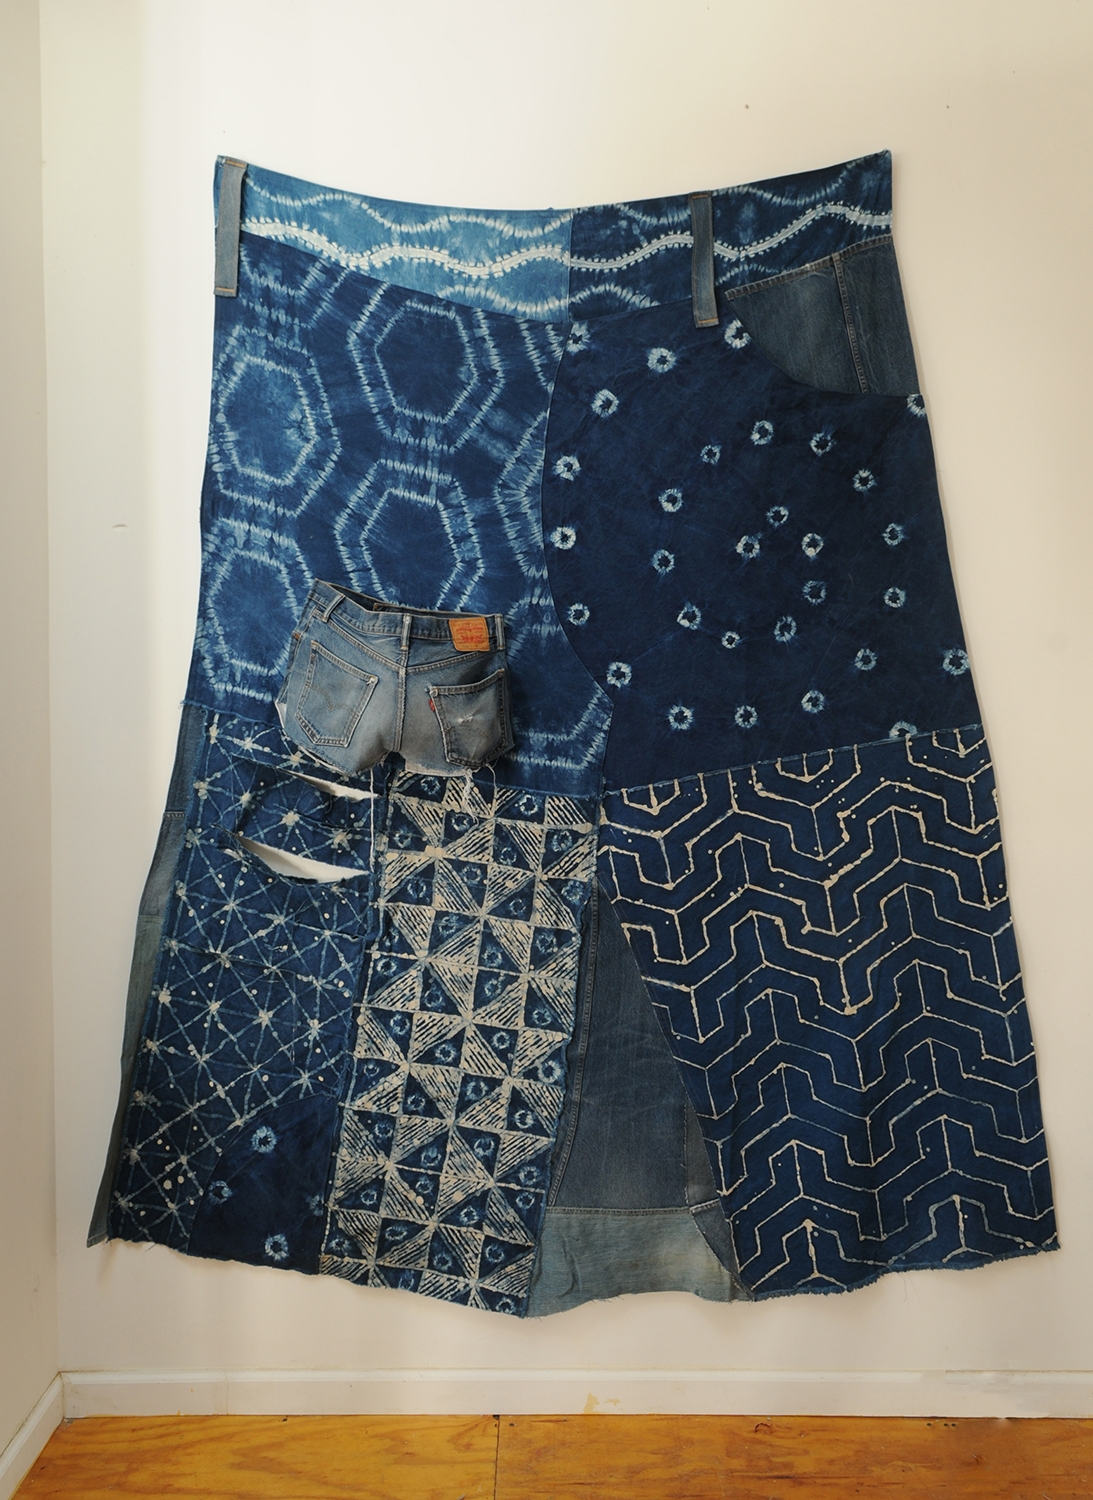 Big Jean Skirt, or The Rich Soul receives blue crystals sprinkled down upon her head.